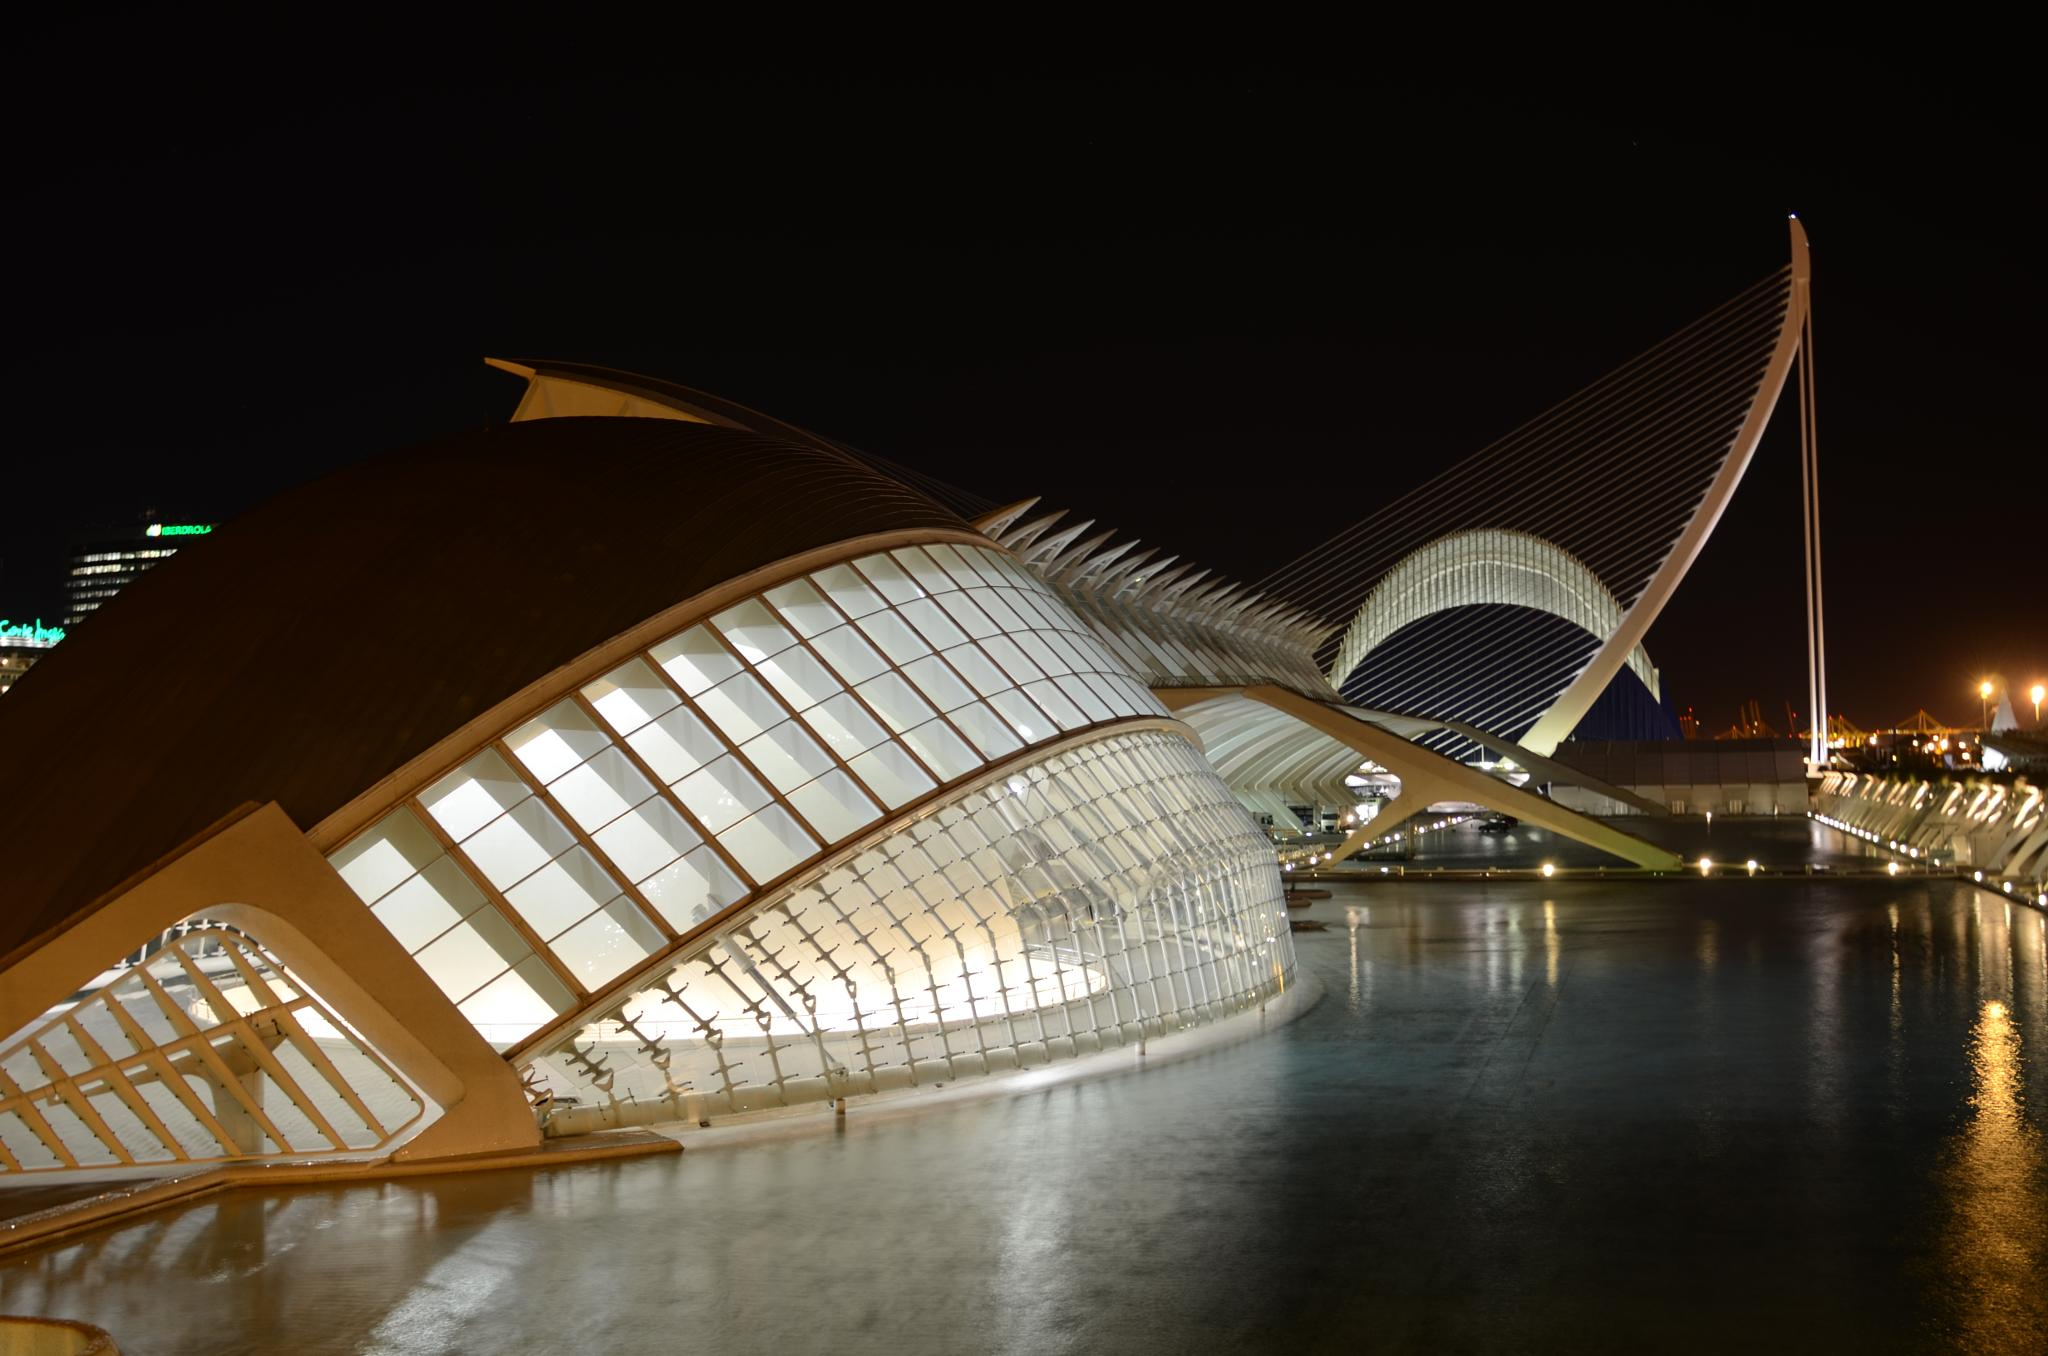 City of Arts and Sciences by ClaudioBezerra